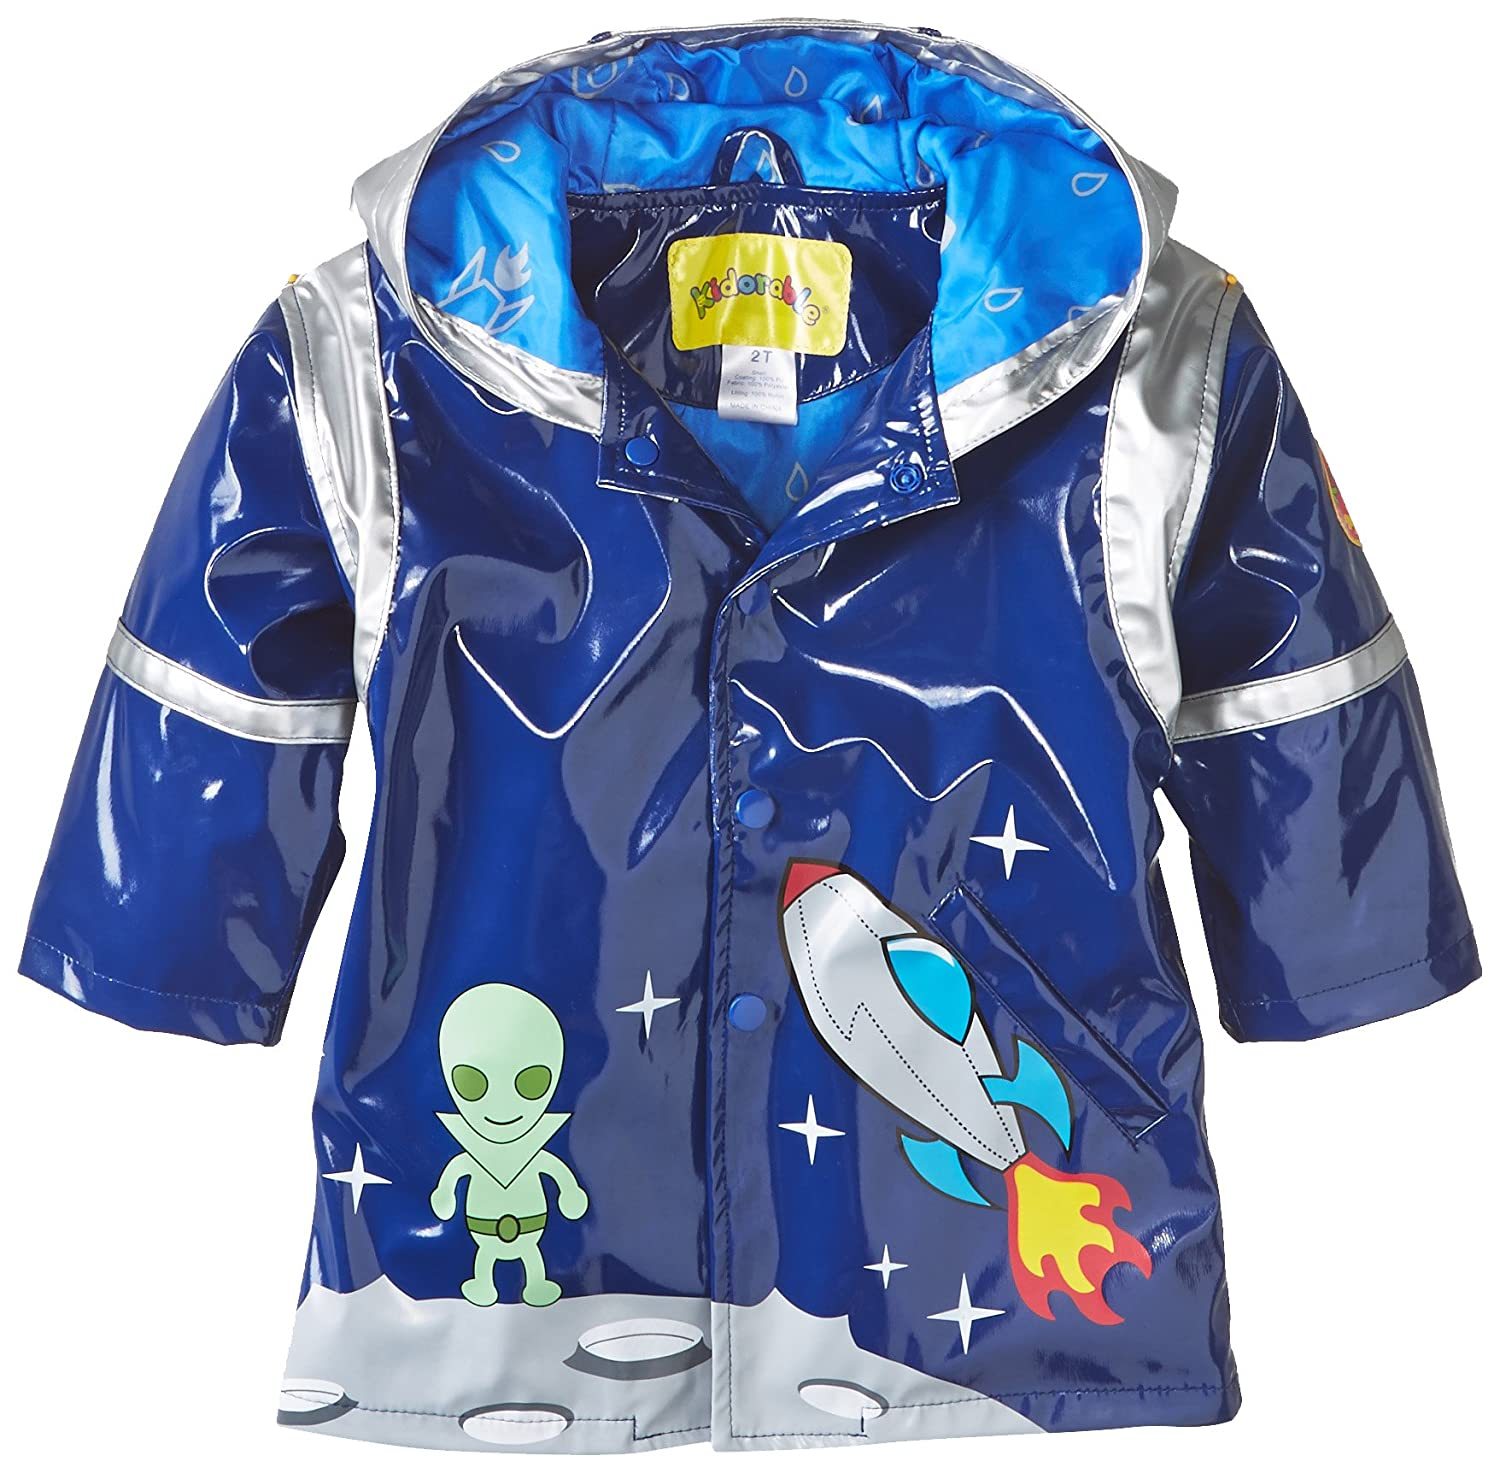 Kidorable Blue Space Hero All-Weather Raincoat for Boys w/Fun Spaceship Pocket, Astronaut Helmet 397188